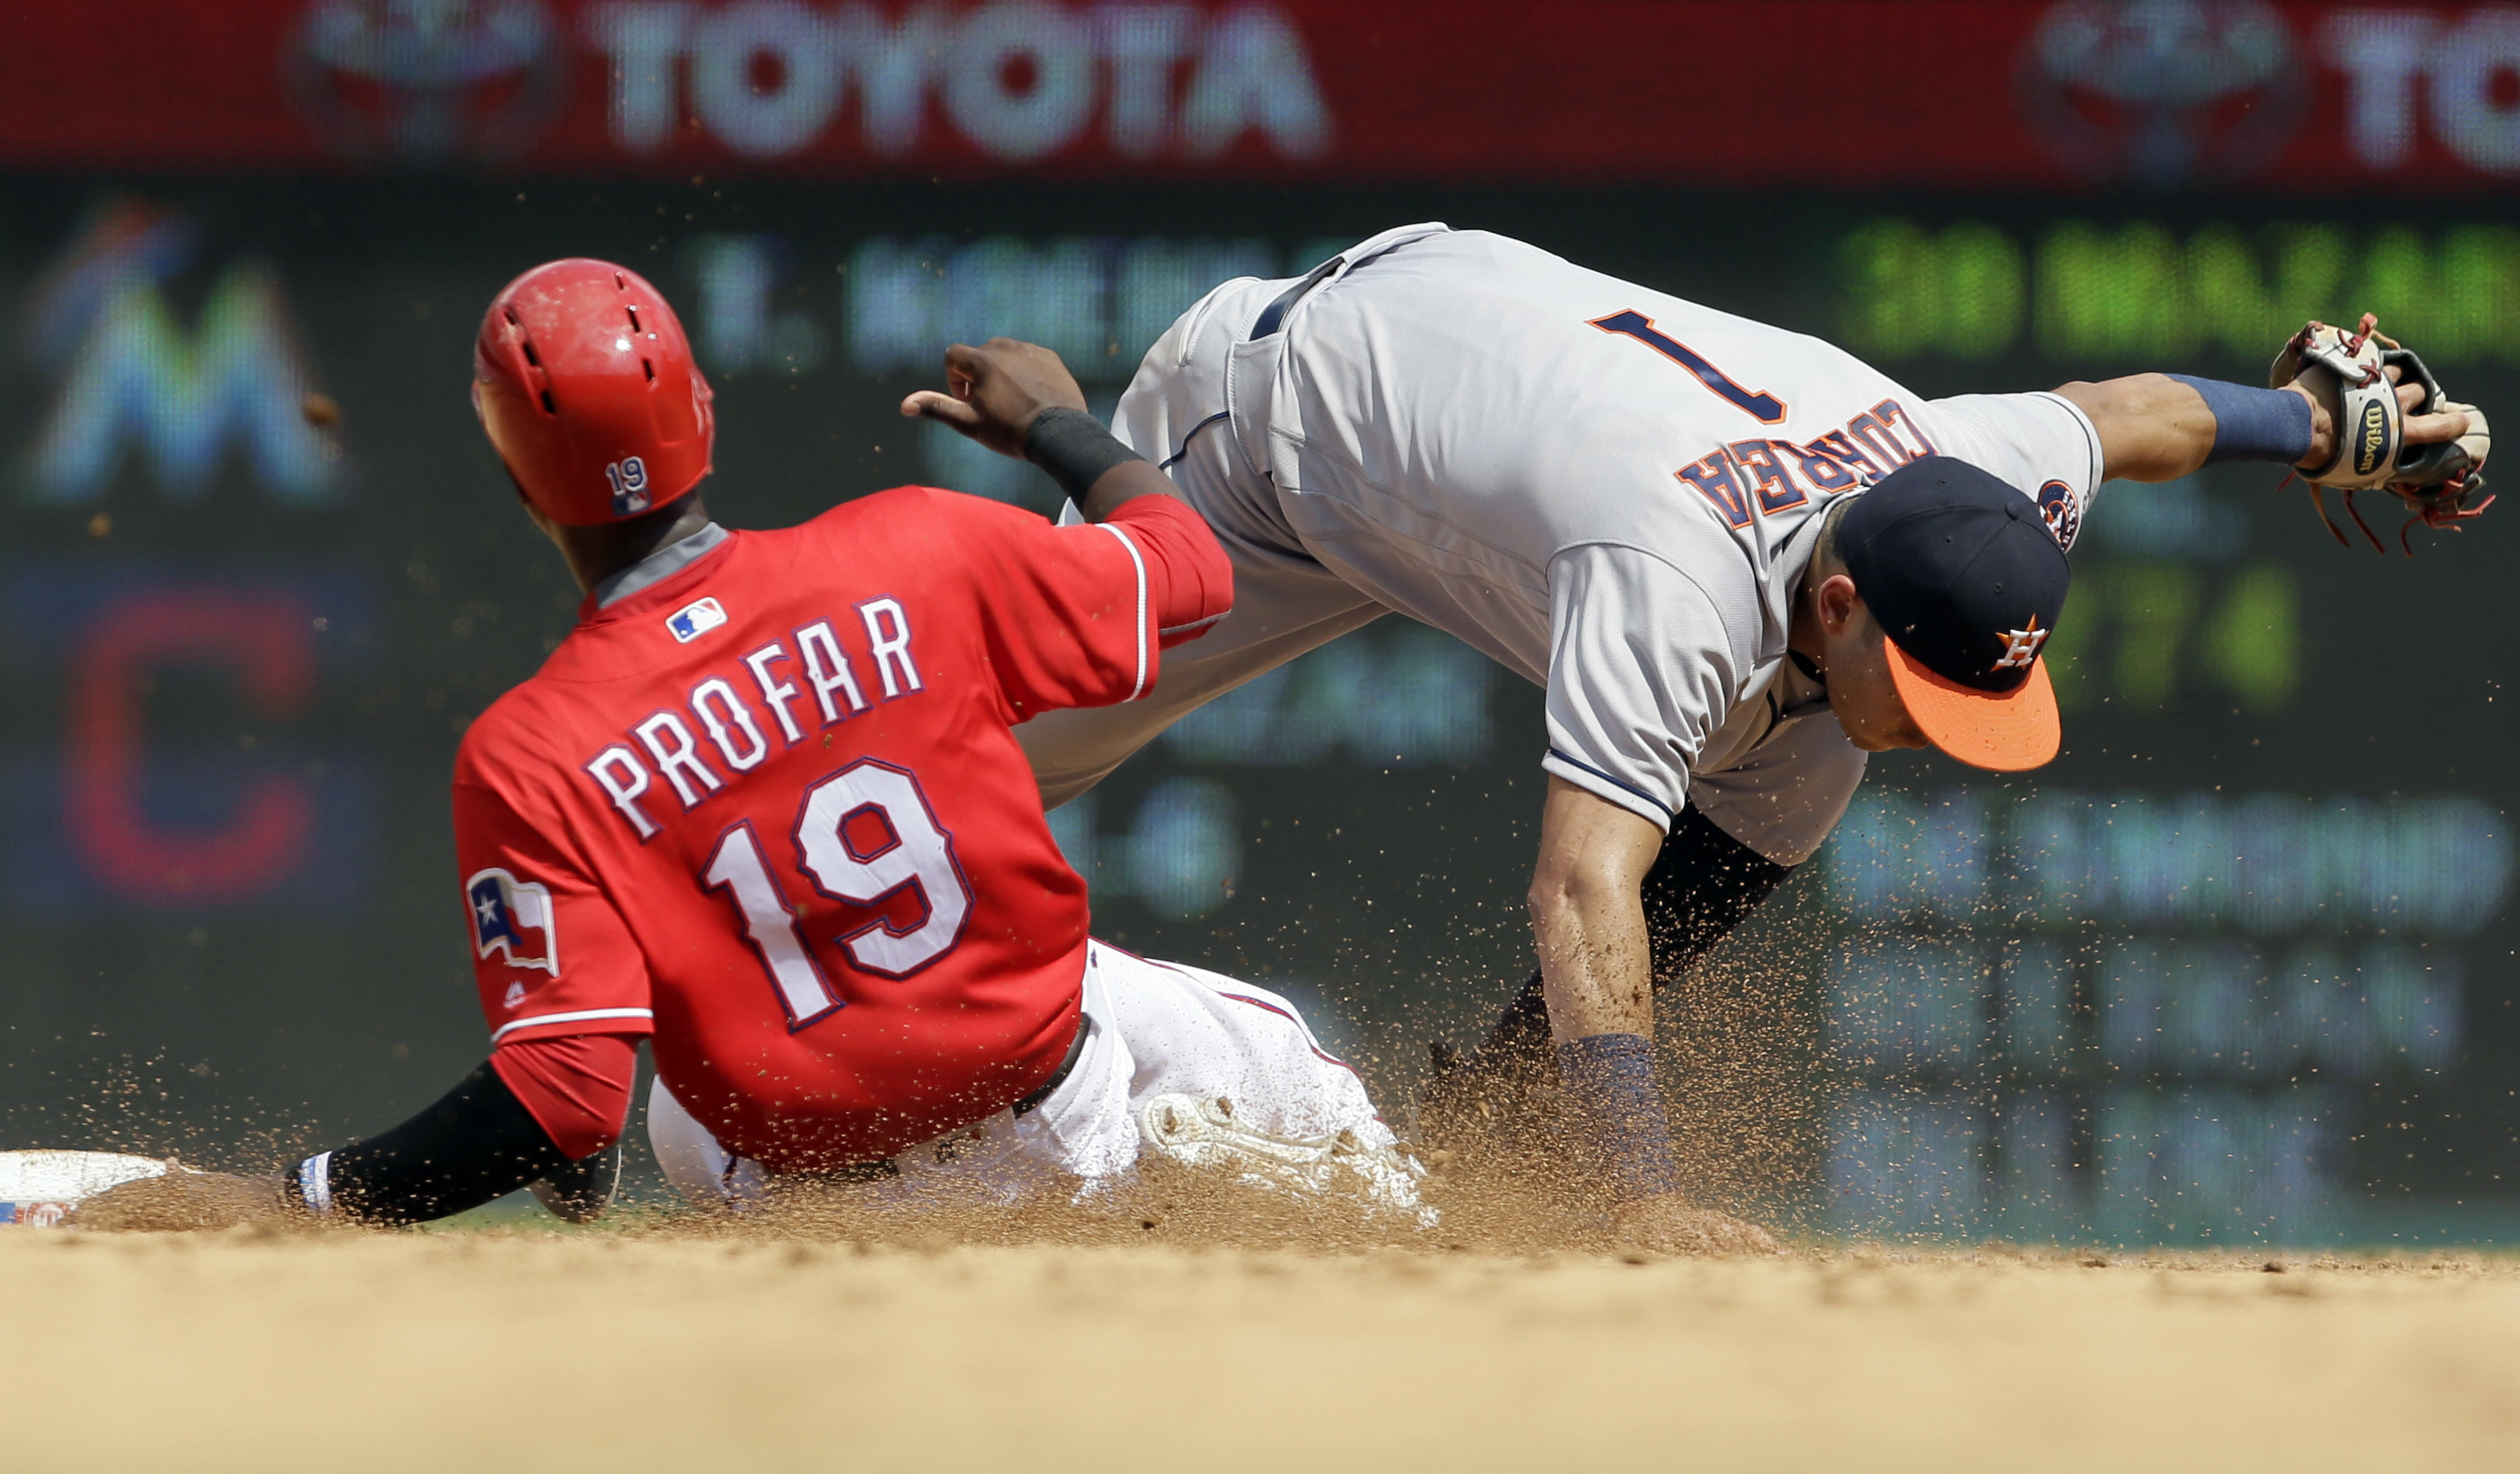 Houston Astros shortstop Carlos Correa (1) holds onto the ball as Texas Rangers' Jurickson Profar (19) slides into second base on a force-out during the third inning of a baseball game in Arlington, Texas, Sunday, Sept. 4, 2016. Rangers' Nomar Mazara was